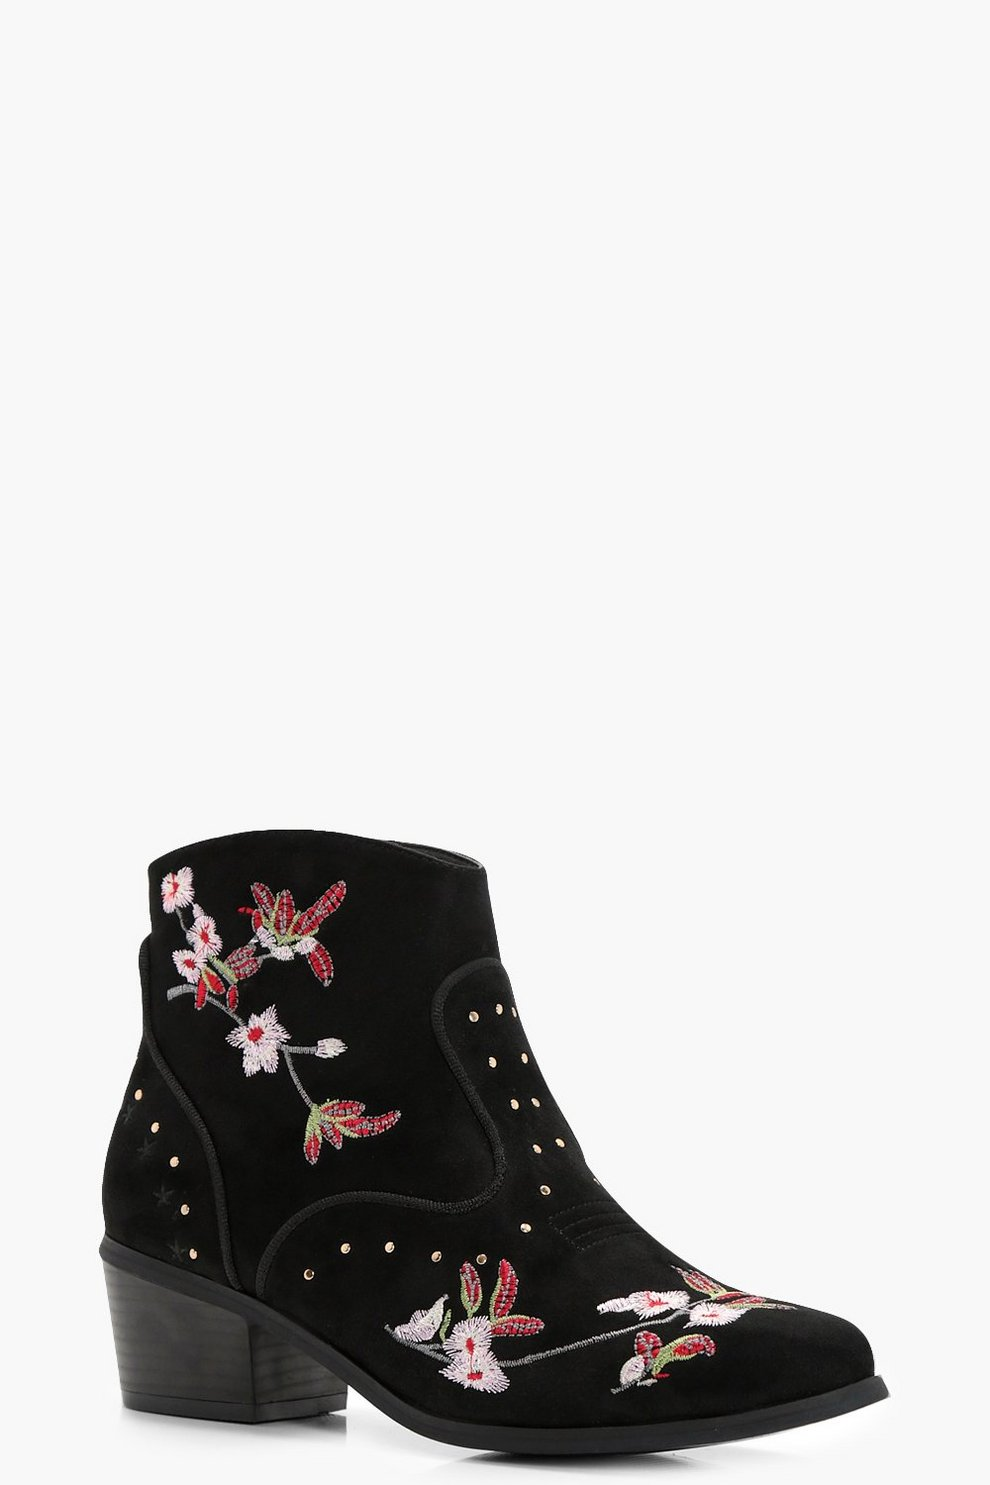 Floral Embroidered Ankle Boots Boohoo Detail